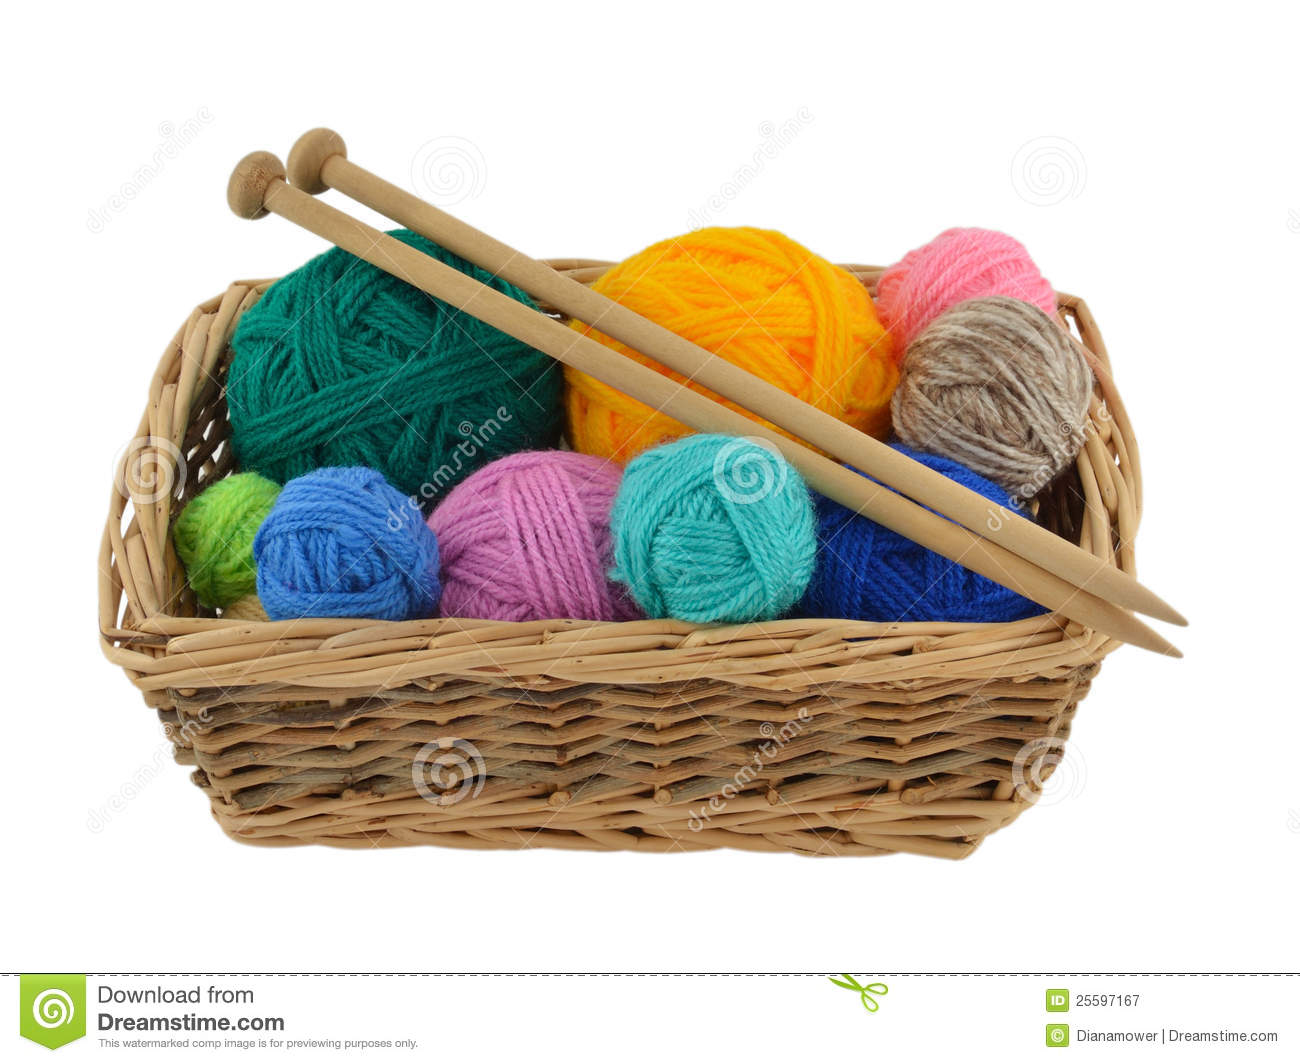 Knitting Patterns Wool And Needles : Knitting Wool And Needles In Basket Royalty Free Stock ...